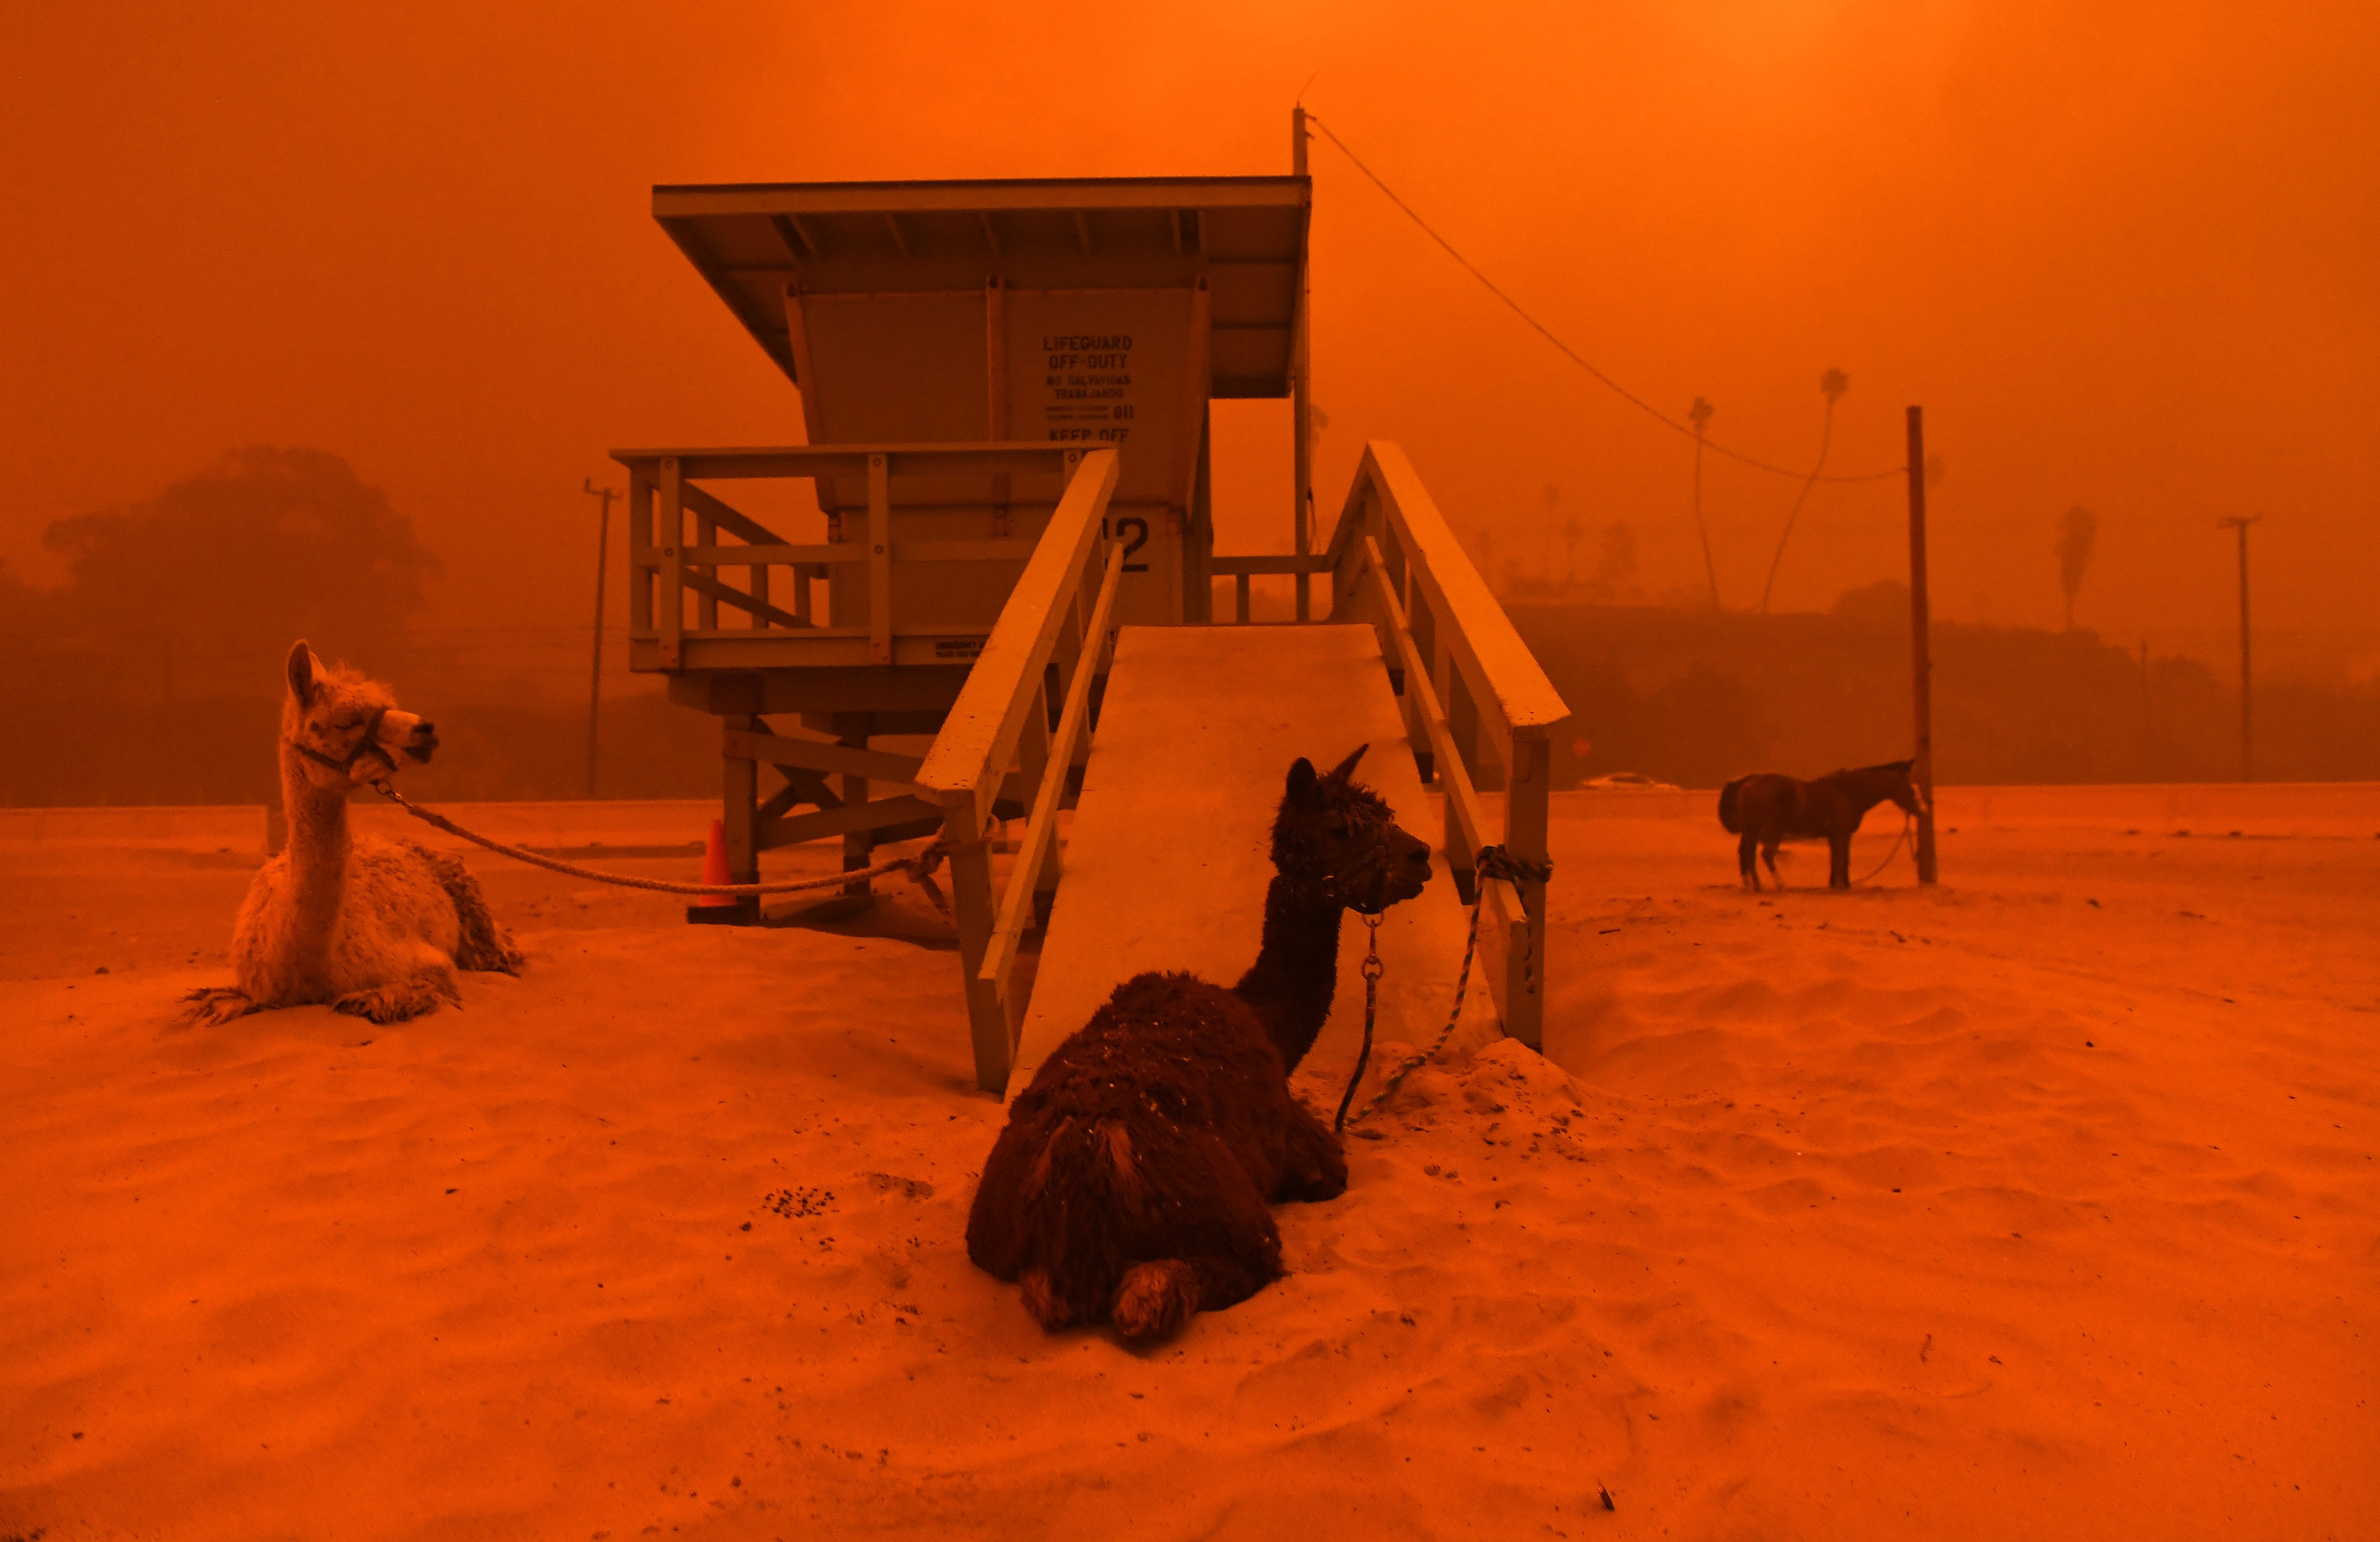 MALIBU, CA - NOVEMBER 09: Llamas are tied to a lifeguard stand on the beach in Malibu as the Woolsey Fire comes down the hill Friday. (Photo by Wally Skalij/Los Angeles Times via Getty Images)